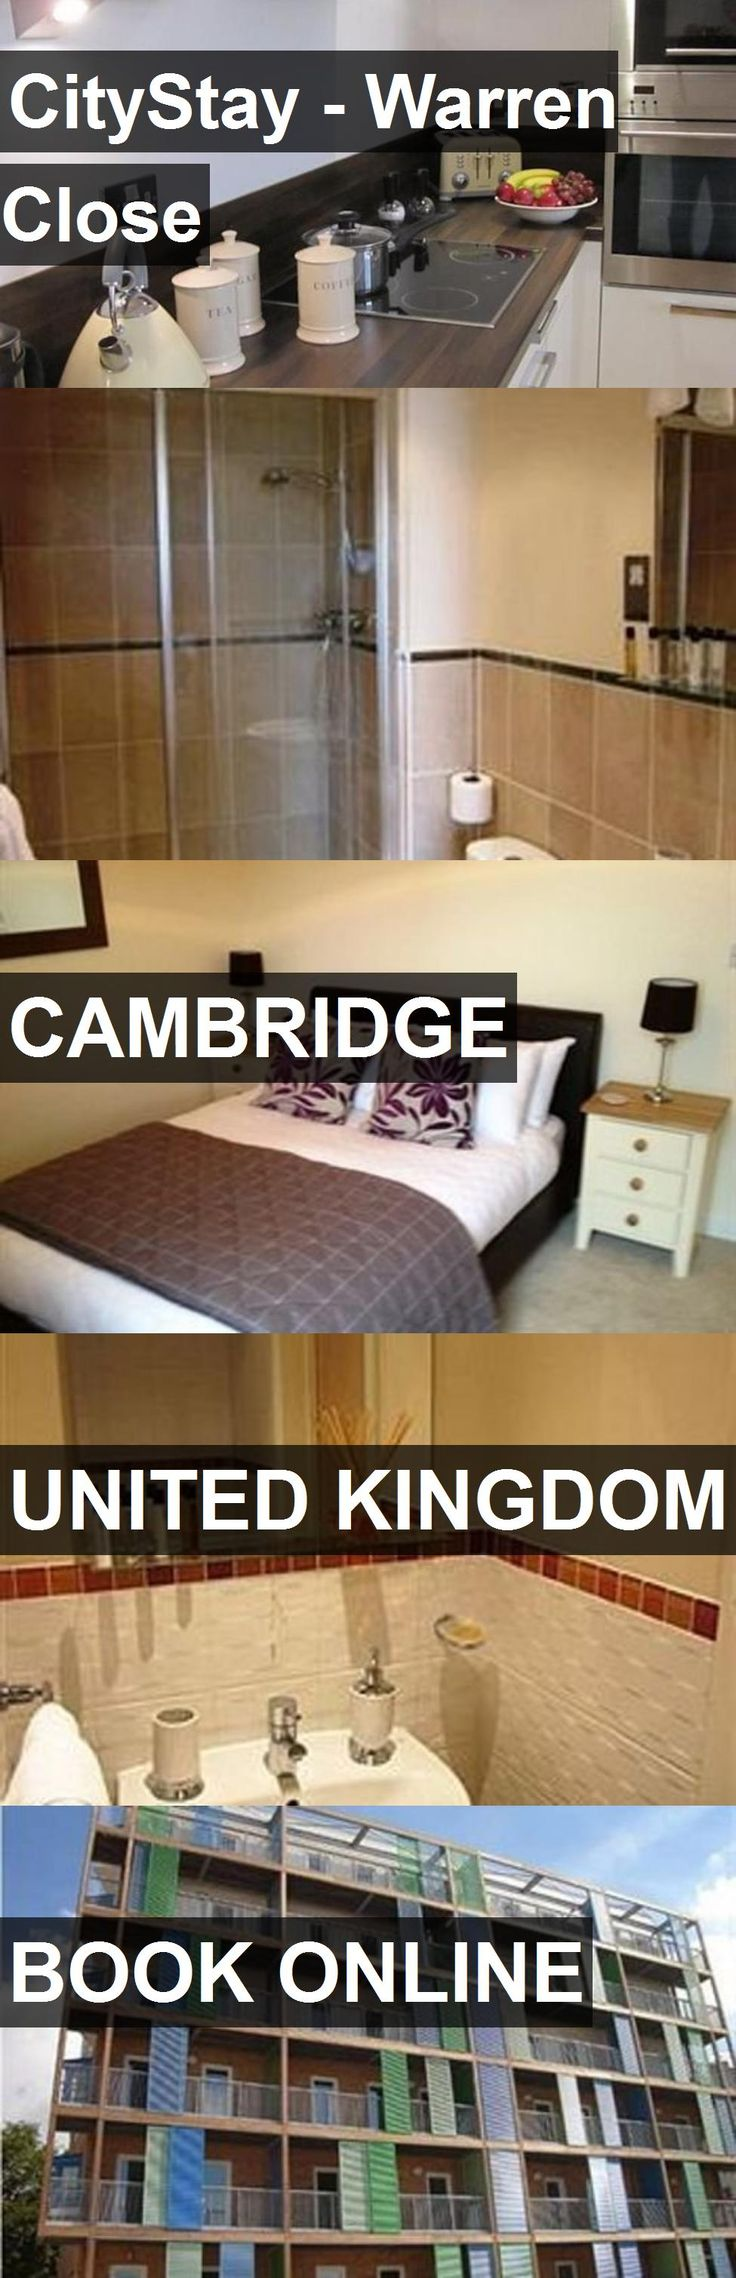 Hotel CityStay - Warren Close in Cambridge, United Kingdom. For more information, photos, reviews and best prices please follow the link. #UnitedKingdom #Cambridge #travel #vacation #hotel